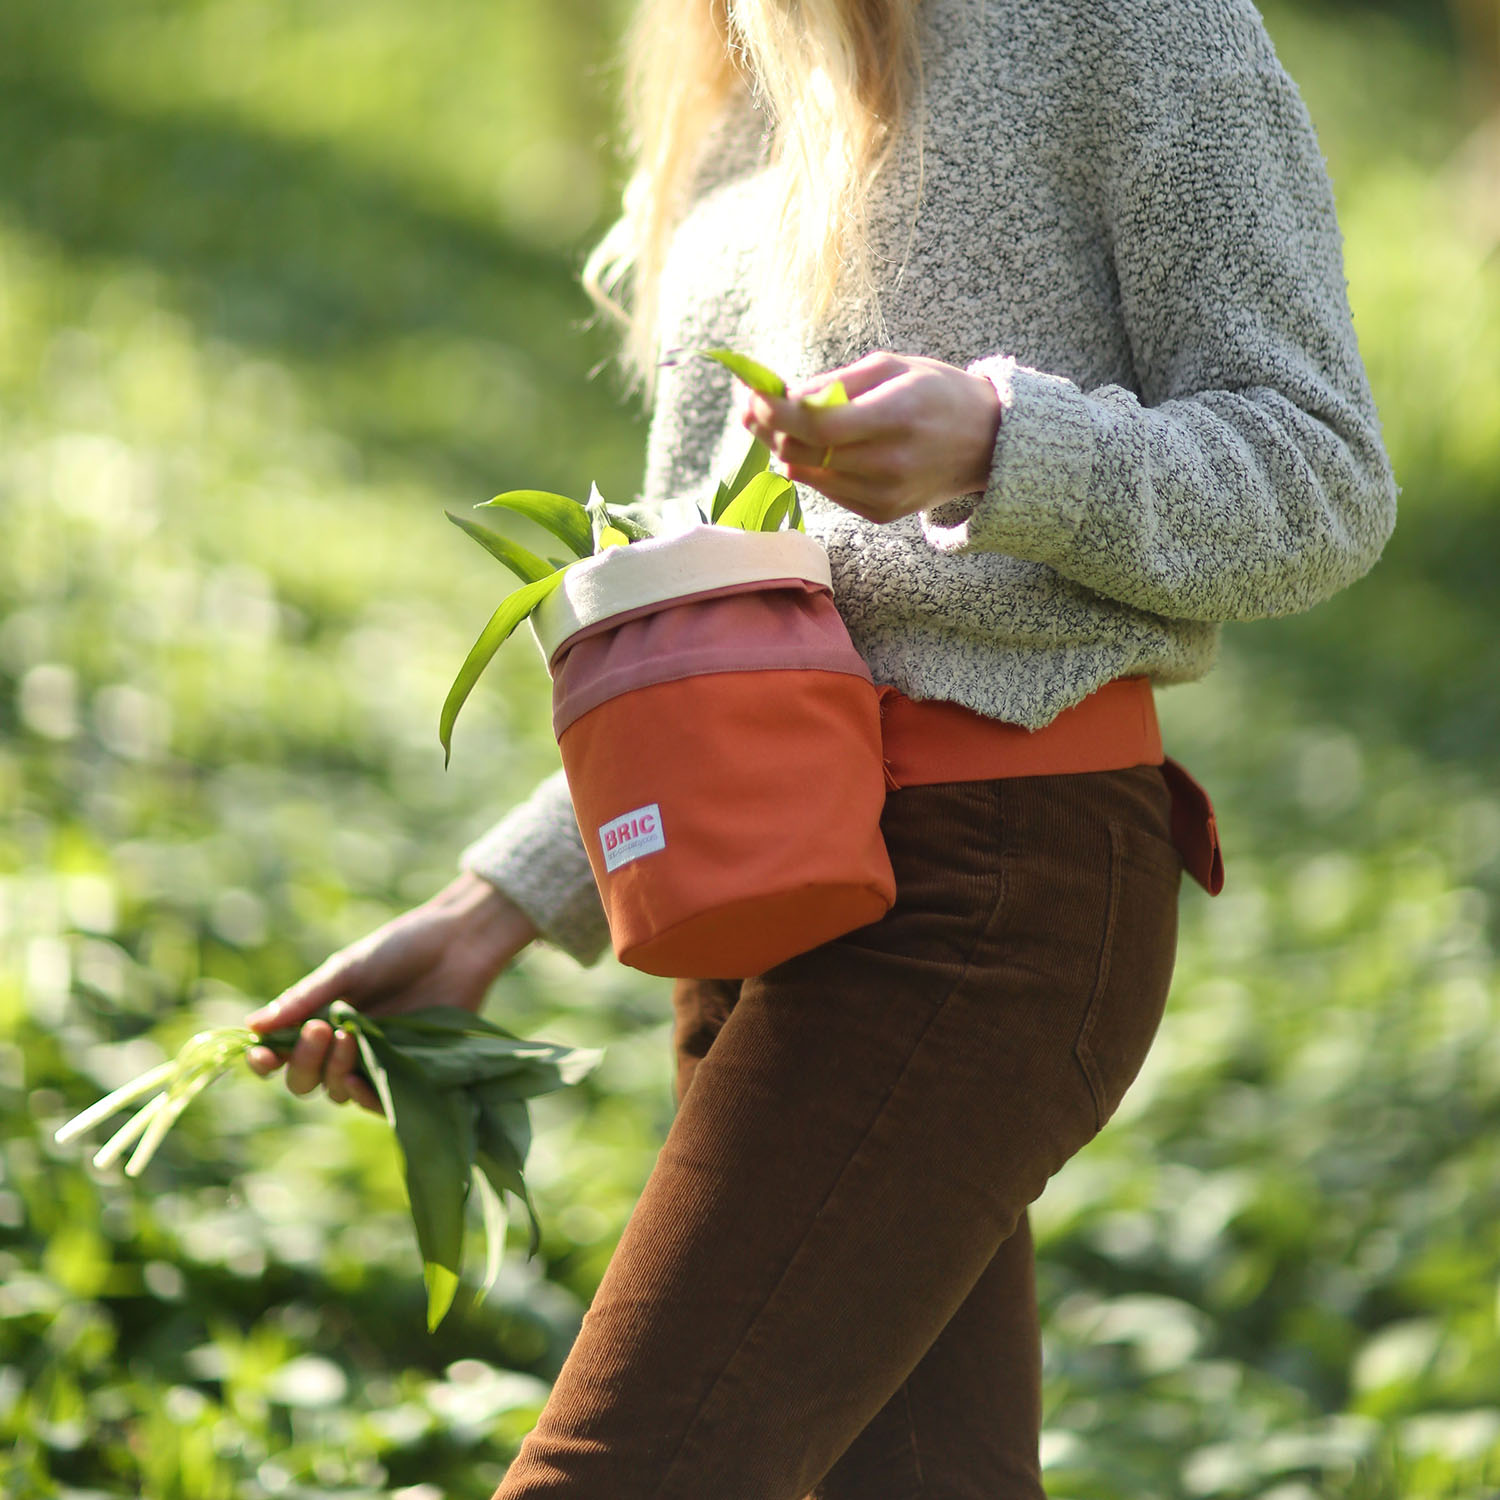 Foraging for nature's bounty made easy with BRIC's colourful eco-conscious bags